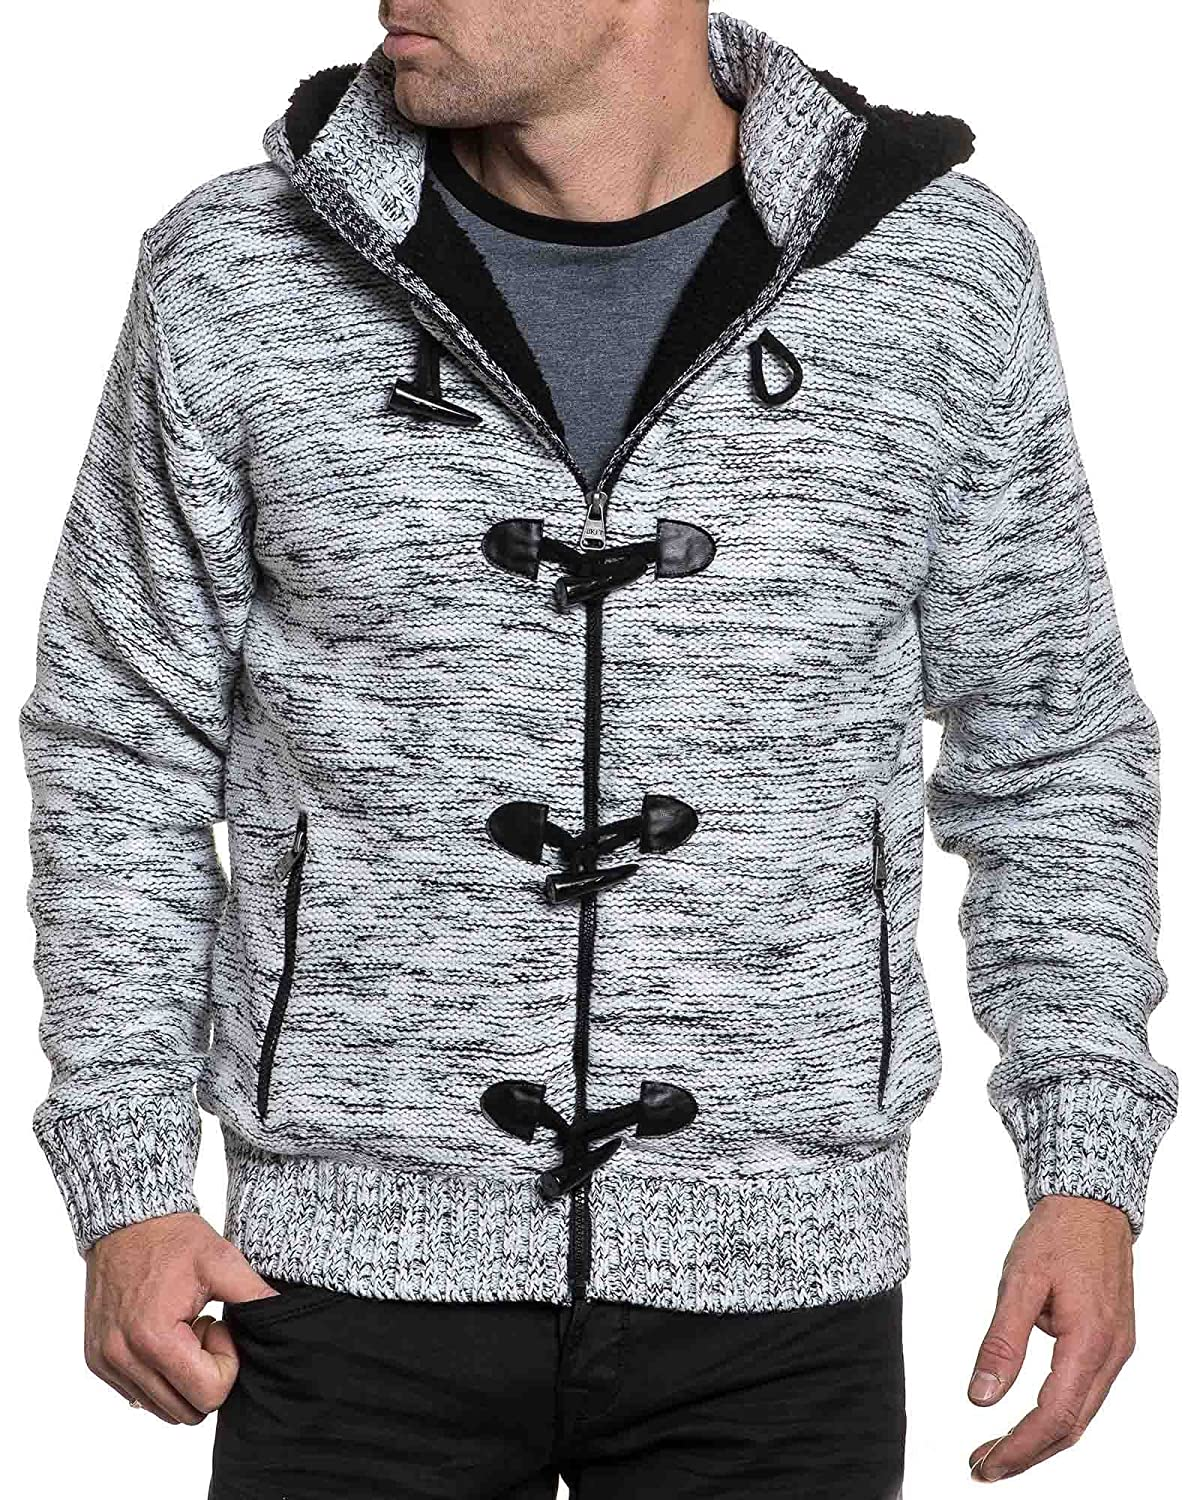 BLZ jeans - filled vest black and white hooded man